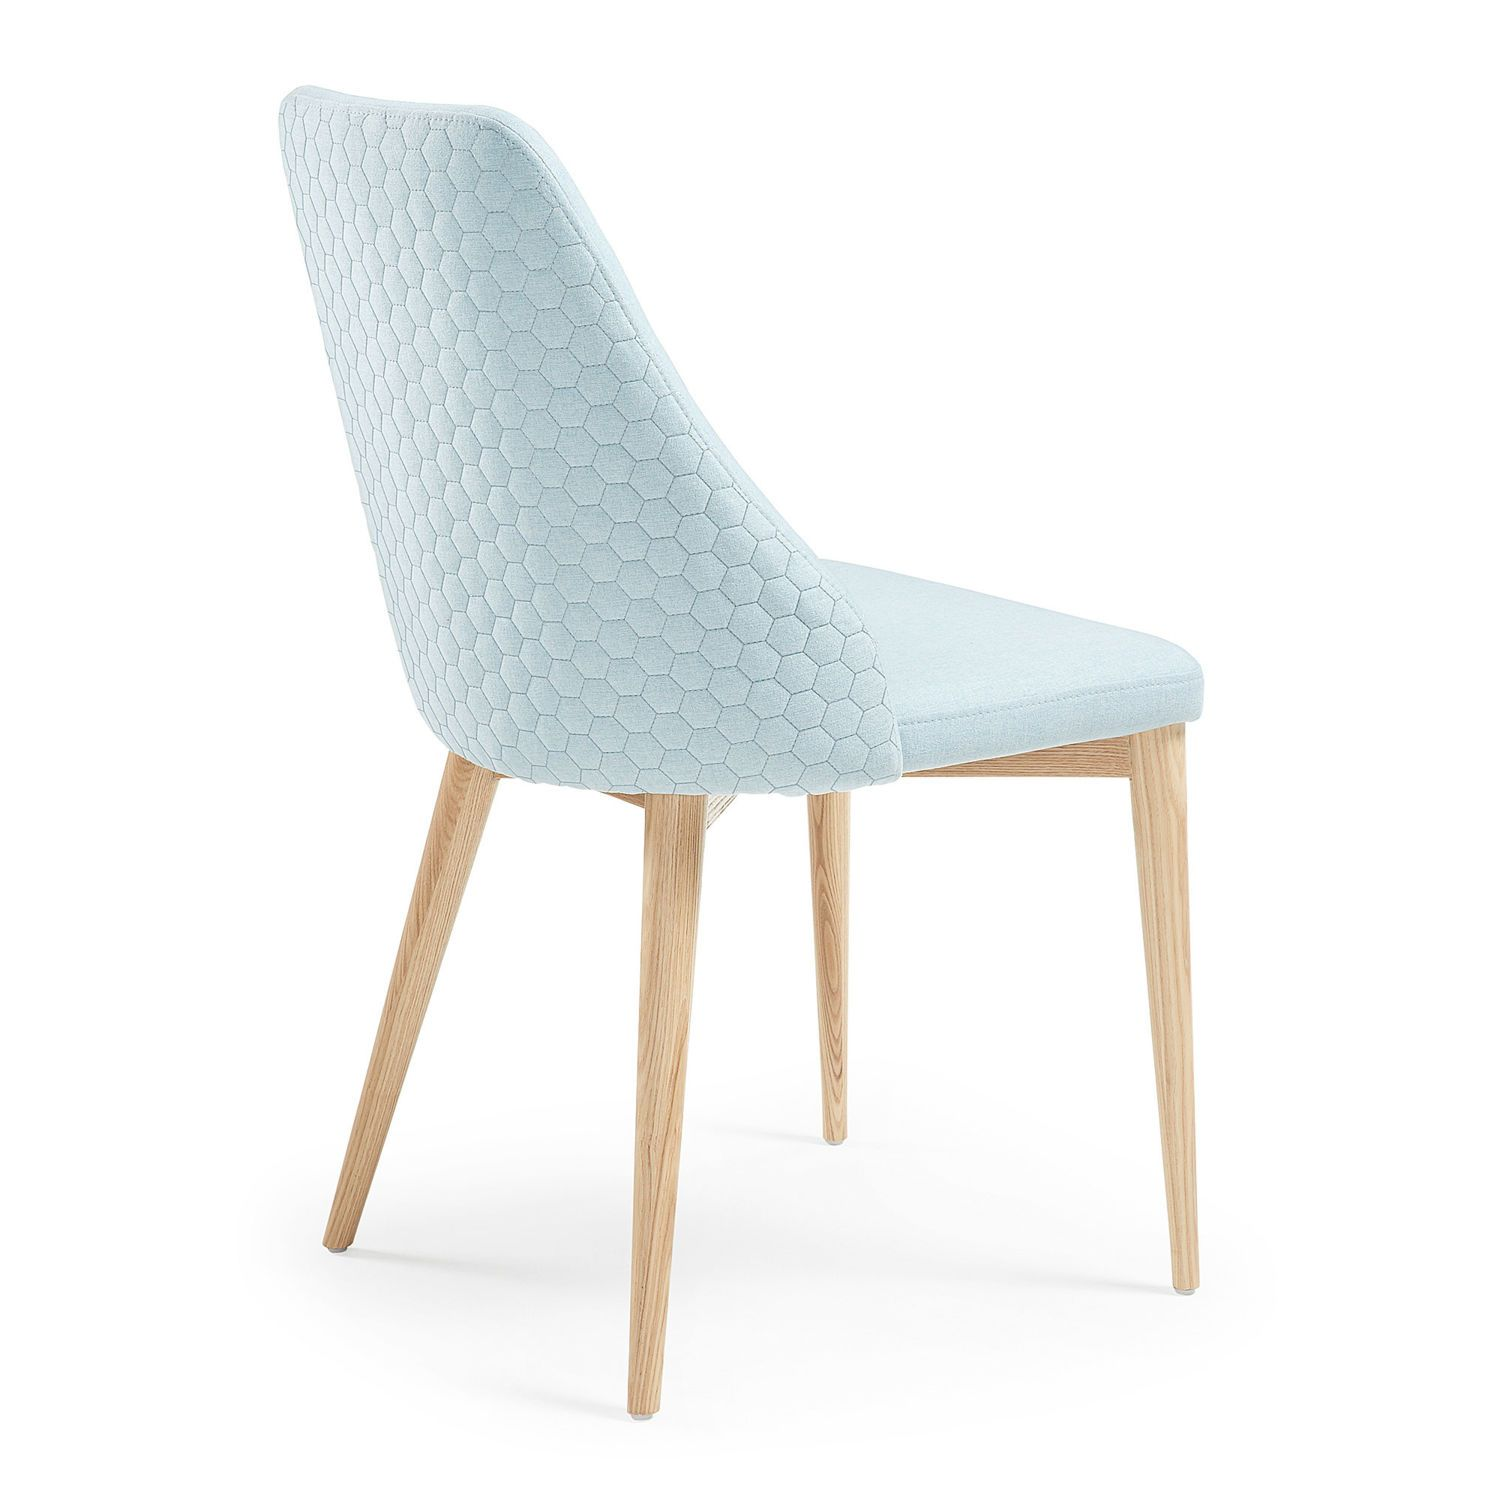 Kavehome Chaise Rosie Bleu Clair Mobilier D Co Pinterest # Meuble Tv Kavehome